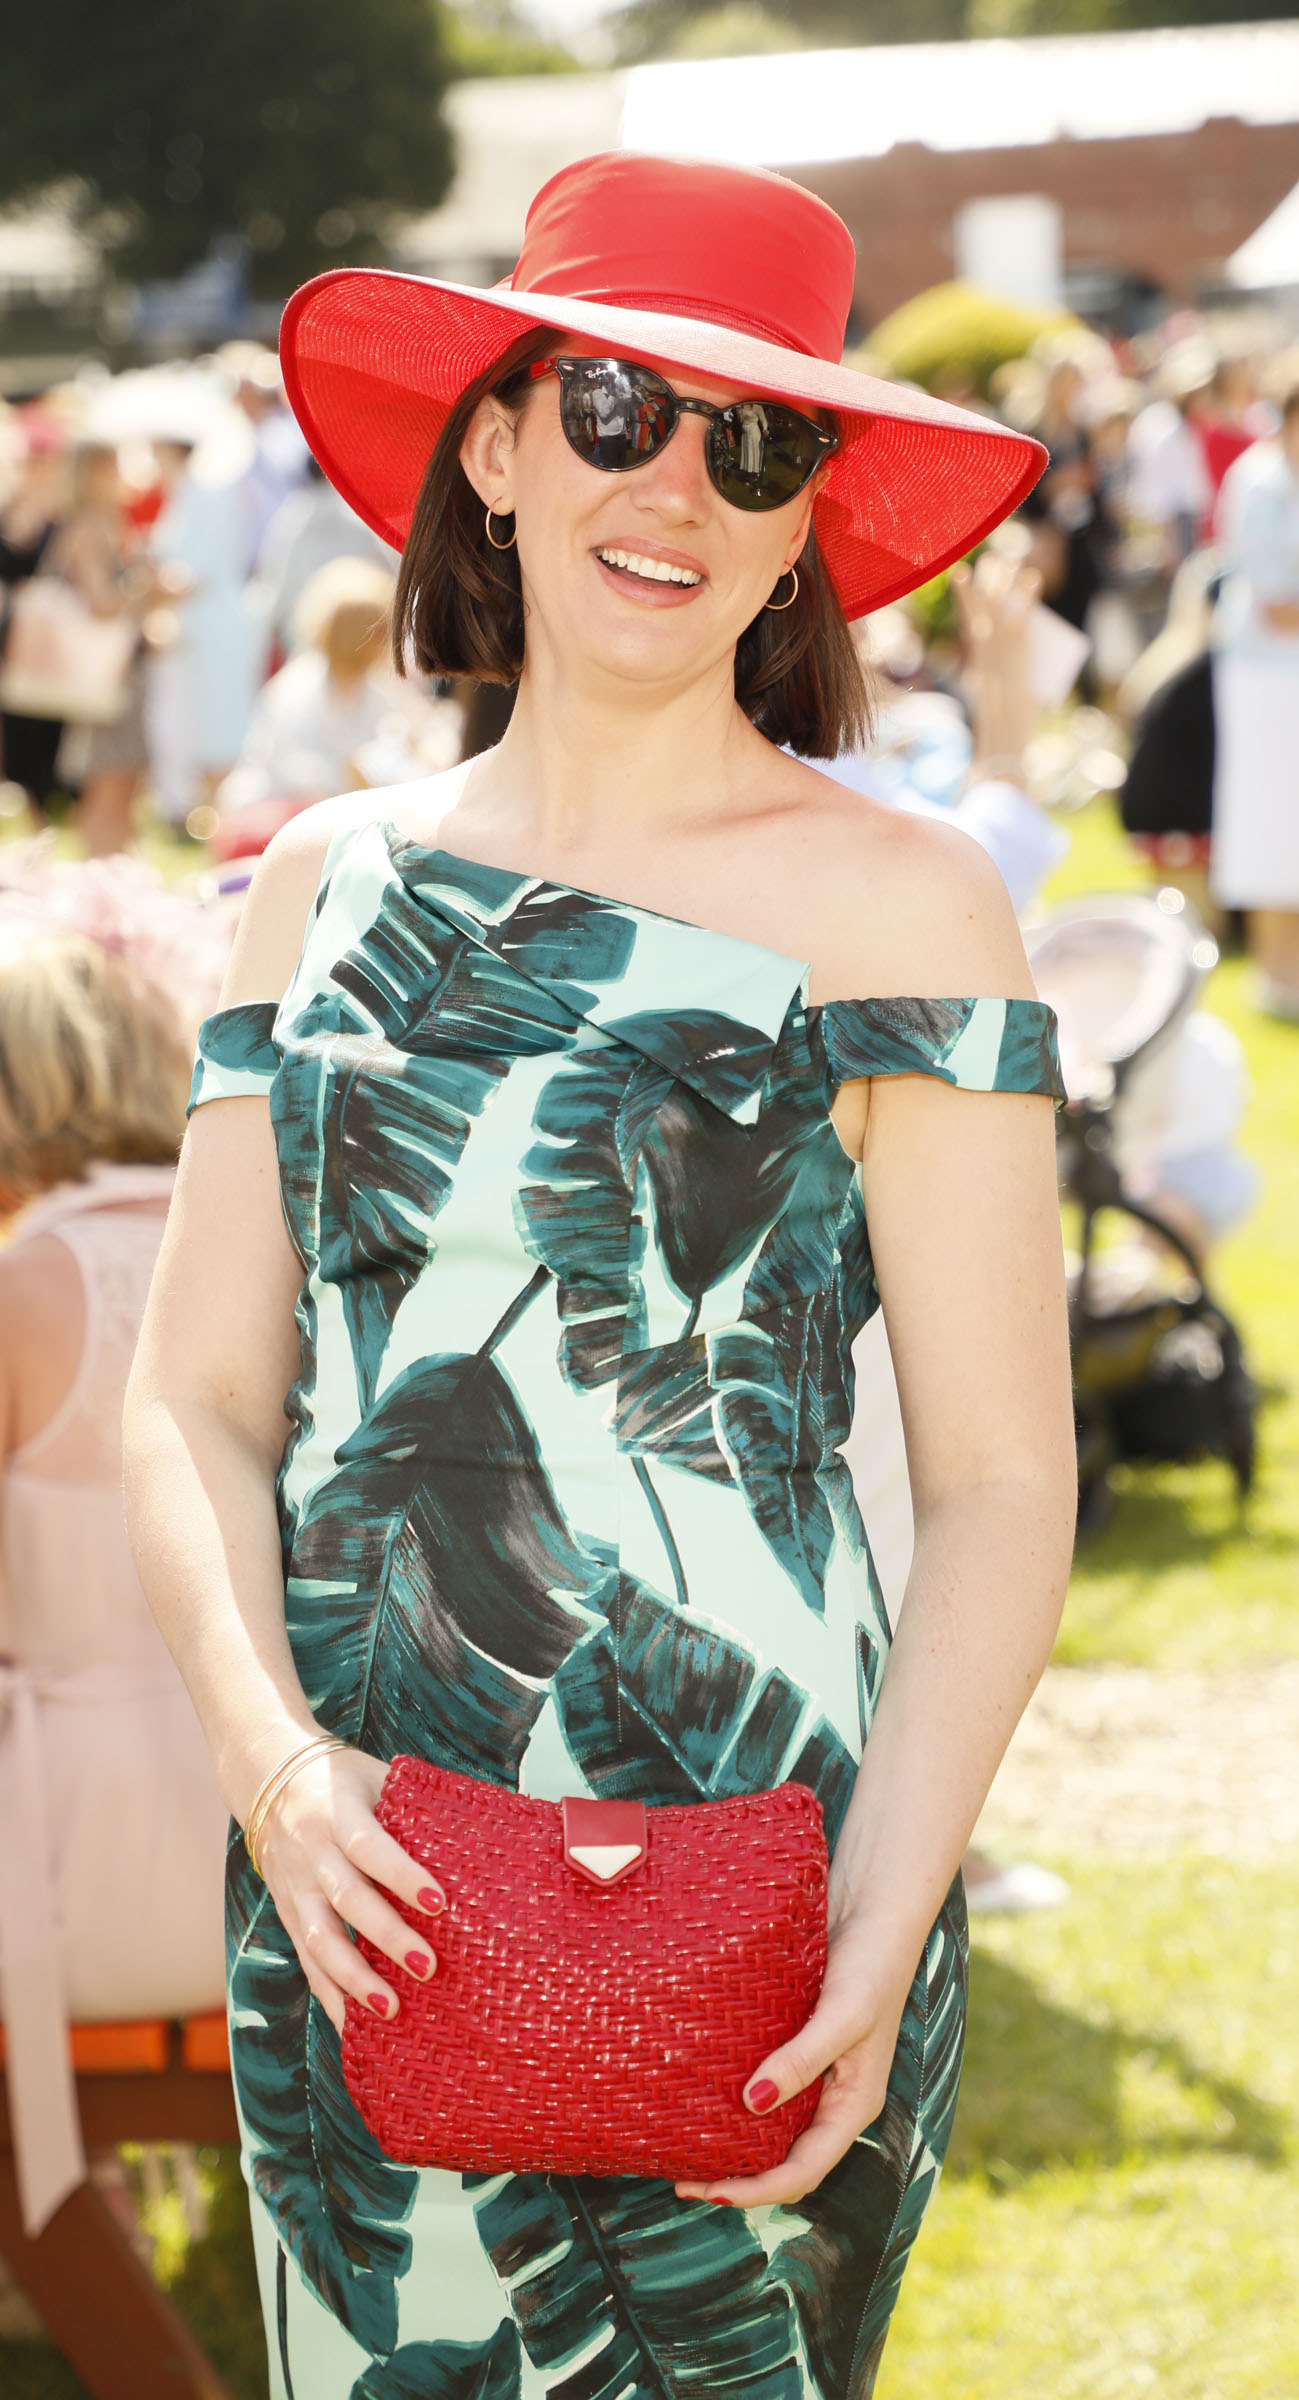 Bríd O'Shea at the Dundrum Town Centre Ladies' Day at the Dublin Horse Show in the RDS. Photo: Kieran Harnett